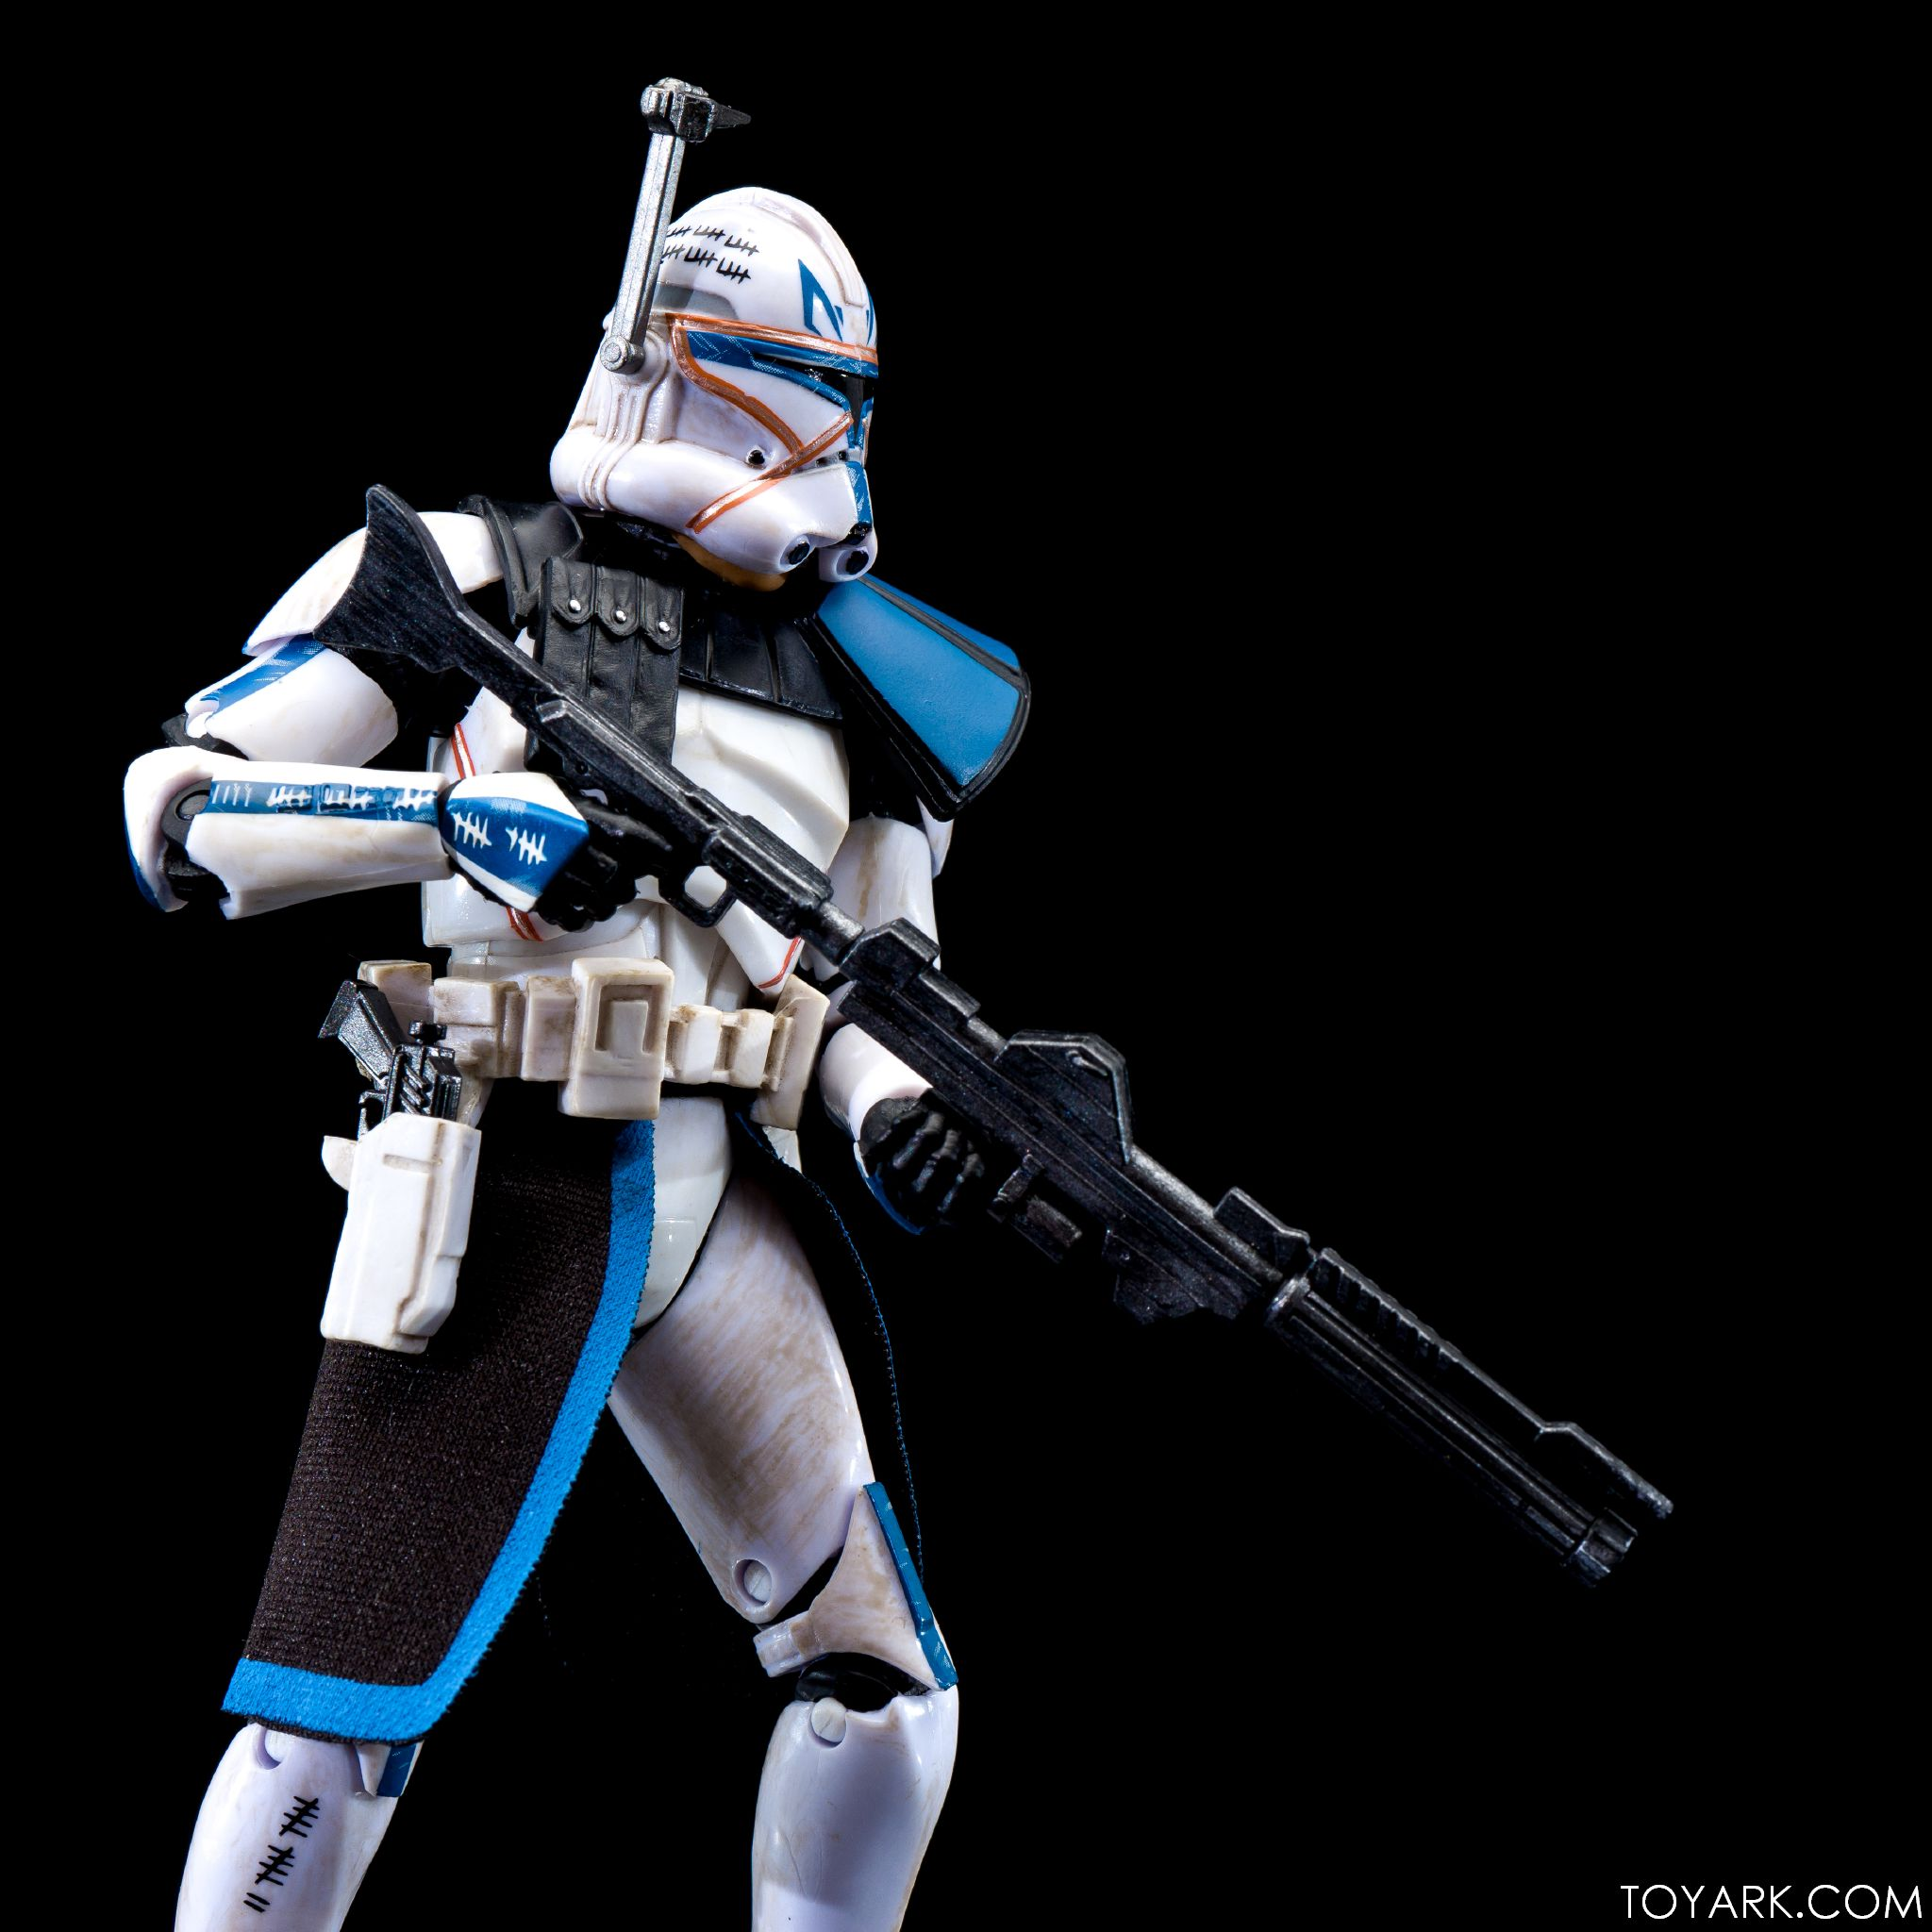 Captain Rex Hascon Exclusive In-Hand Pics - Toy Discussion ...